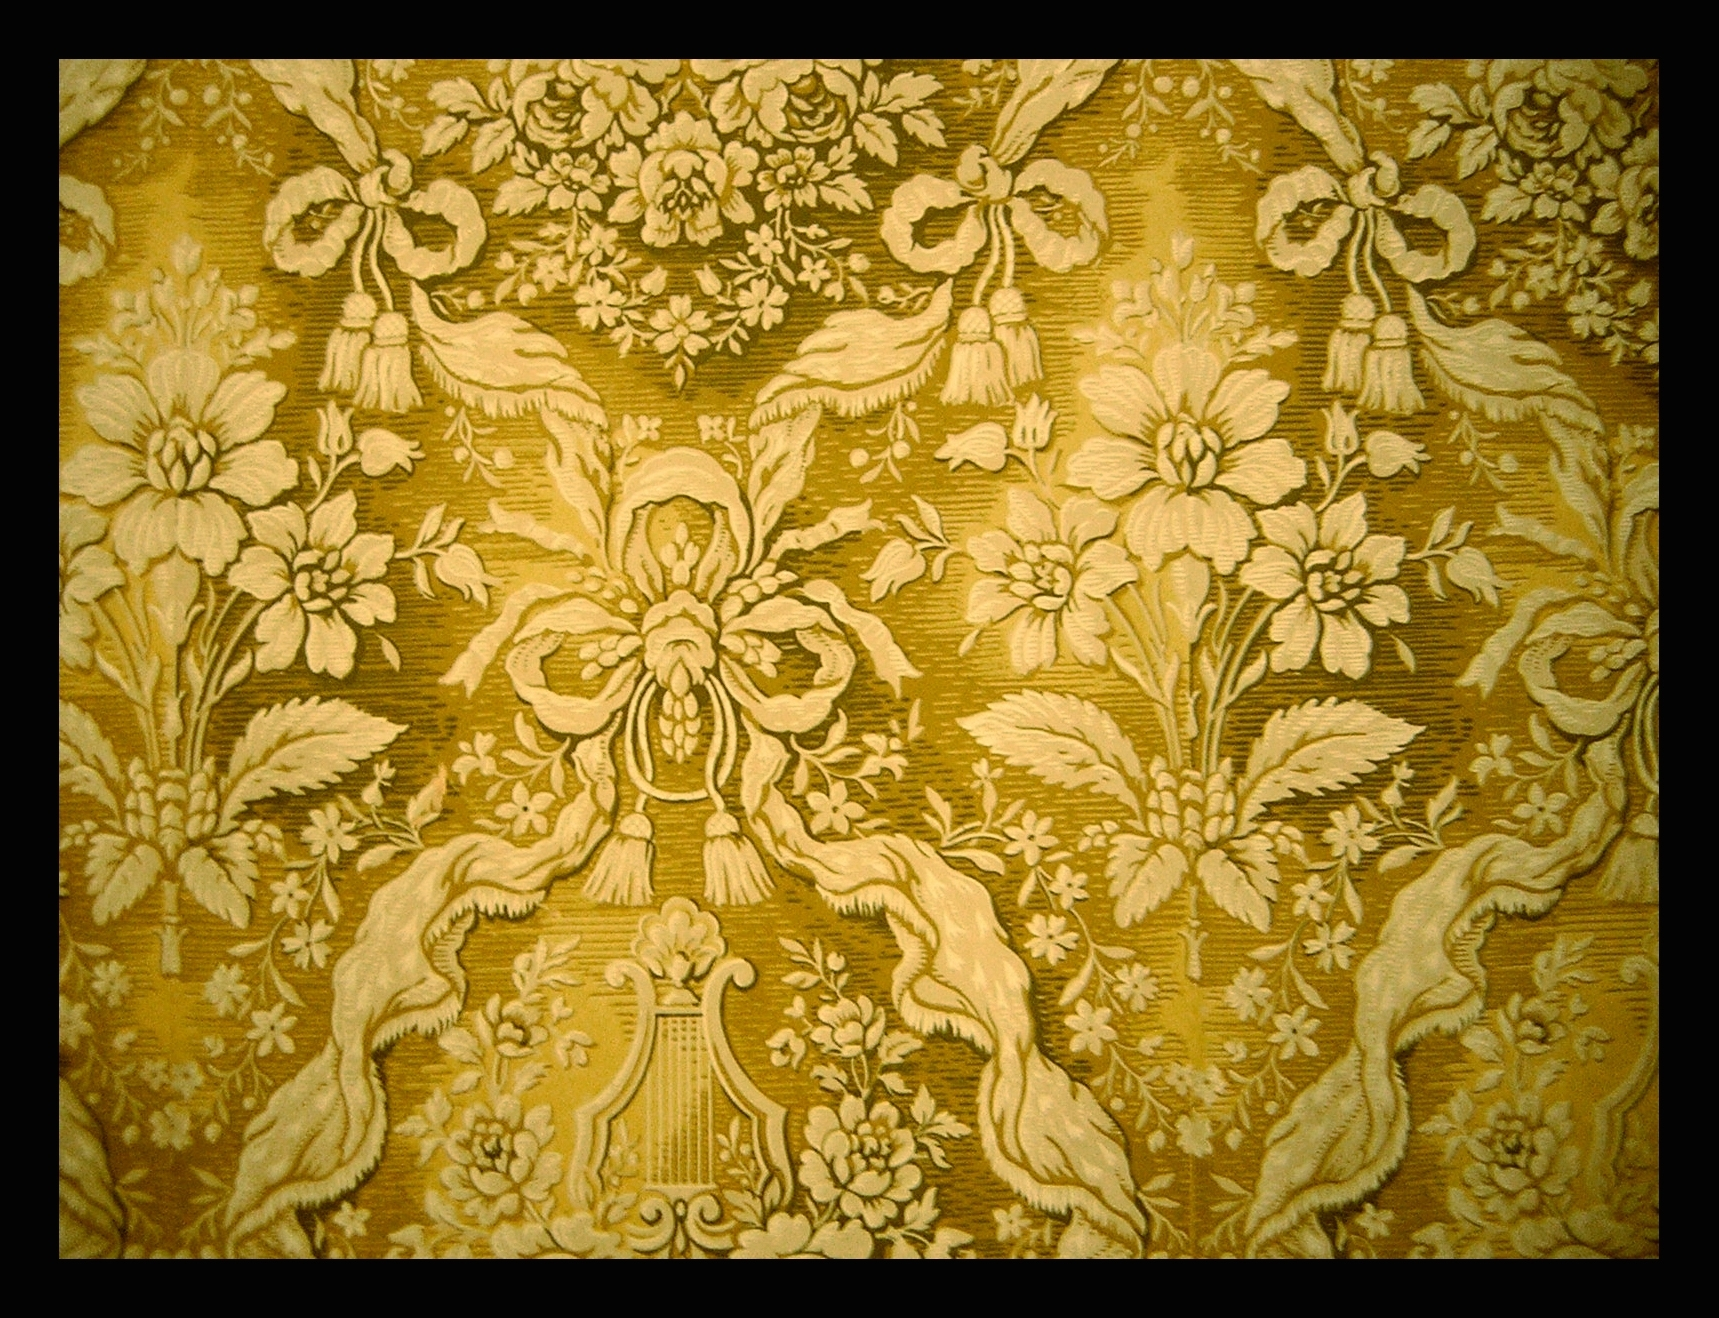 Palace Wall Texture #gold #ornate #fabric #textured | Opulence Inside Current Textured Fabric Wall Art (Gallery 11 of 15)